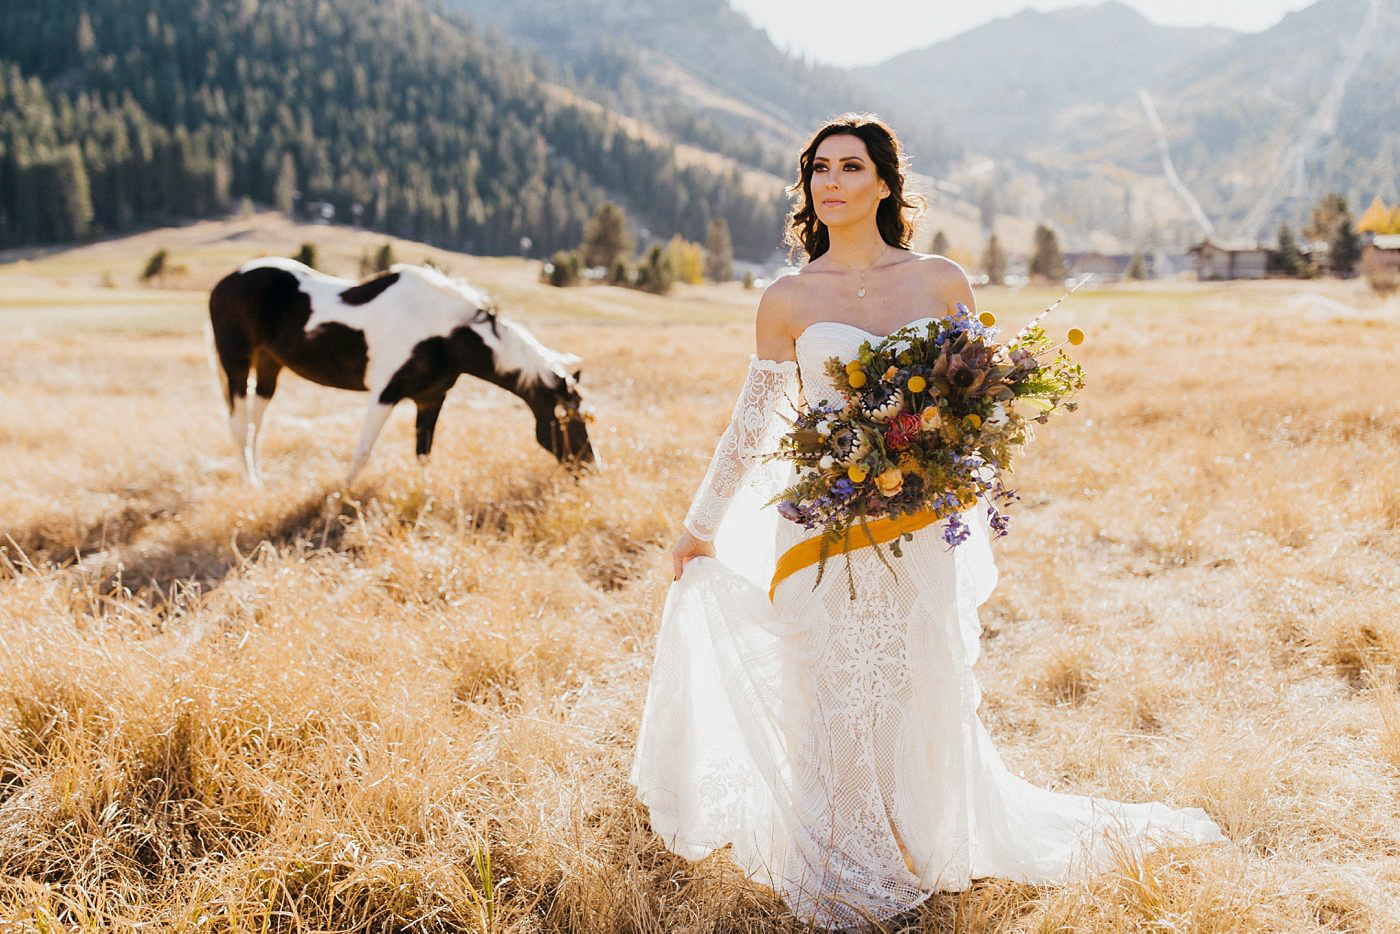 Becca Kufrin Garrett Yrigoyen Pre-Wedding Shoot - The former bearer of red roses held a gorgeous bouquet designed by Love & Lupines as she posed in an open field.